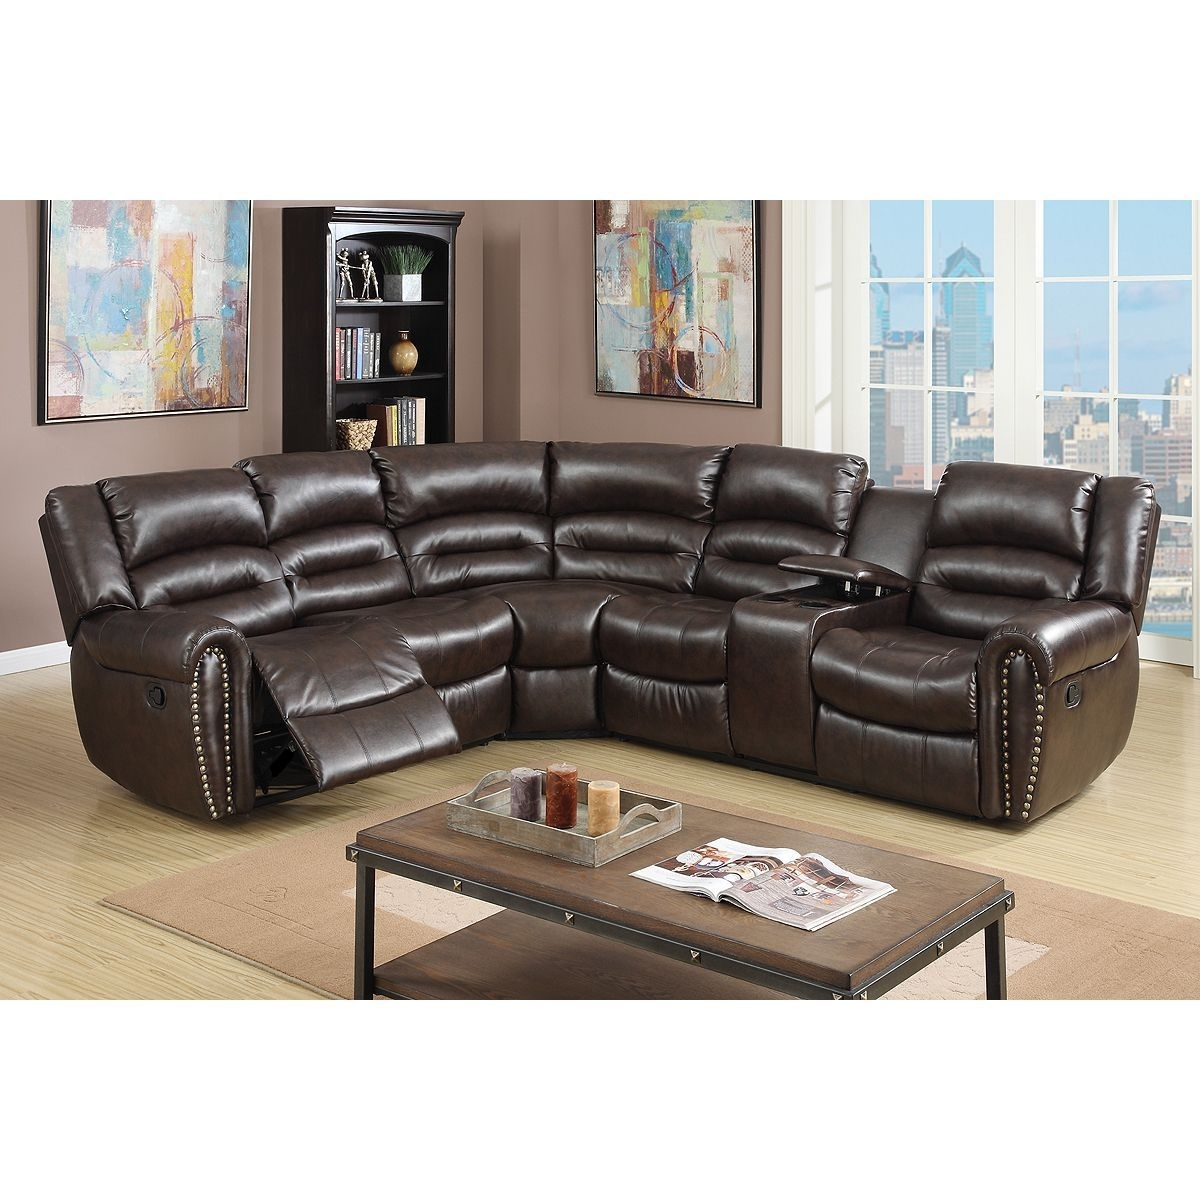 American Eagle Furniture Ek Lb309 Dc Dark Chocolate Sofa C Within Tenny Dark Grey 2 Piece Left Facing Chaise Sectionals With 2 Headrest (Image 6 of 25)